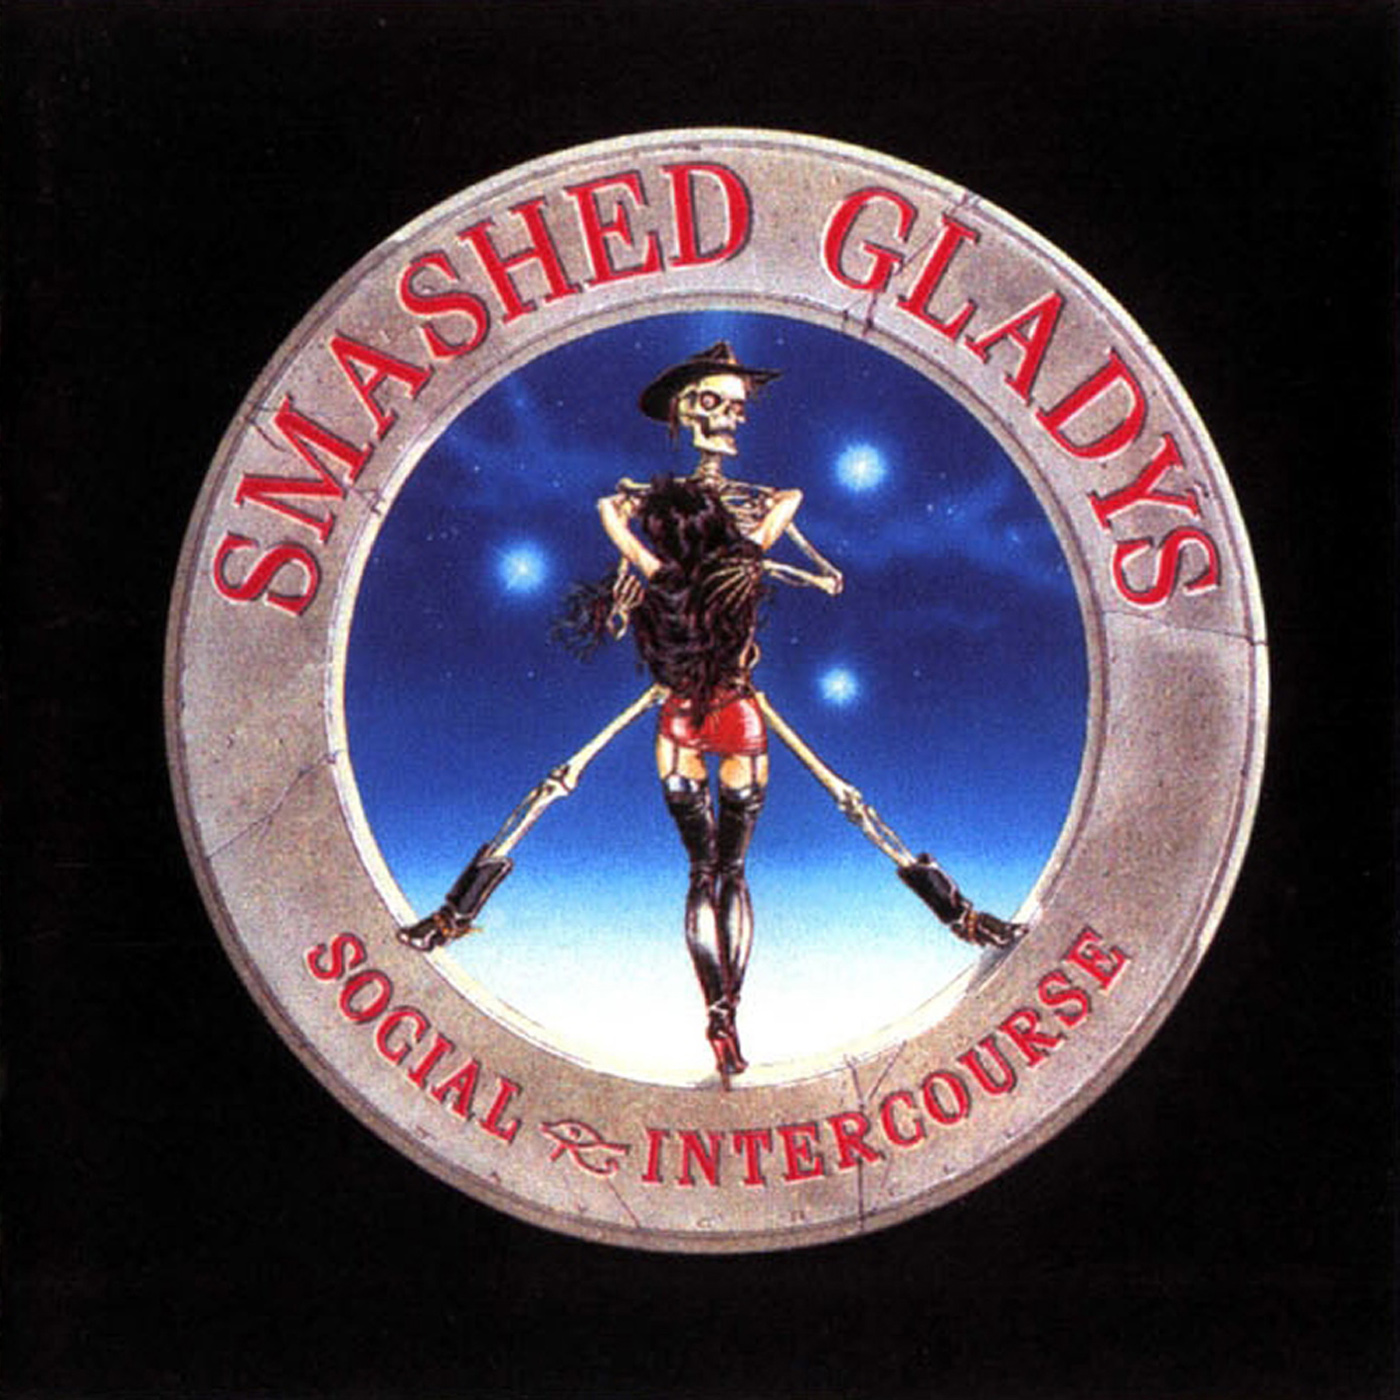 Smashed Gladys - Social Intercourse